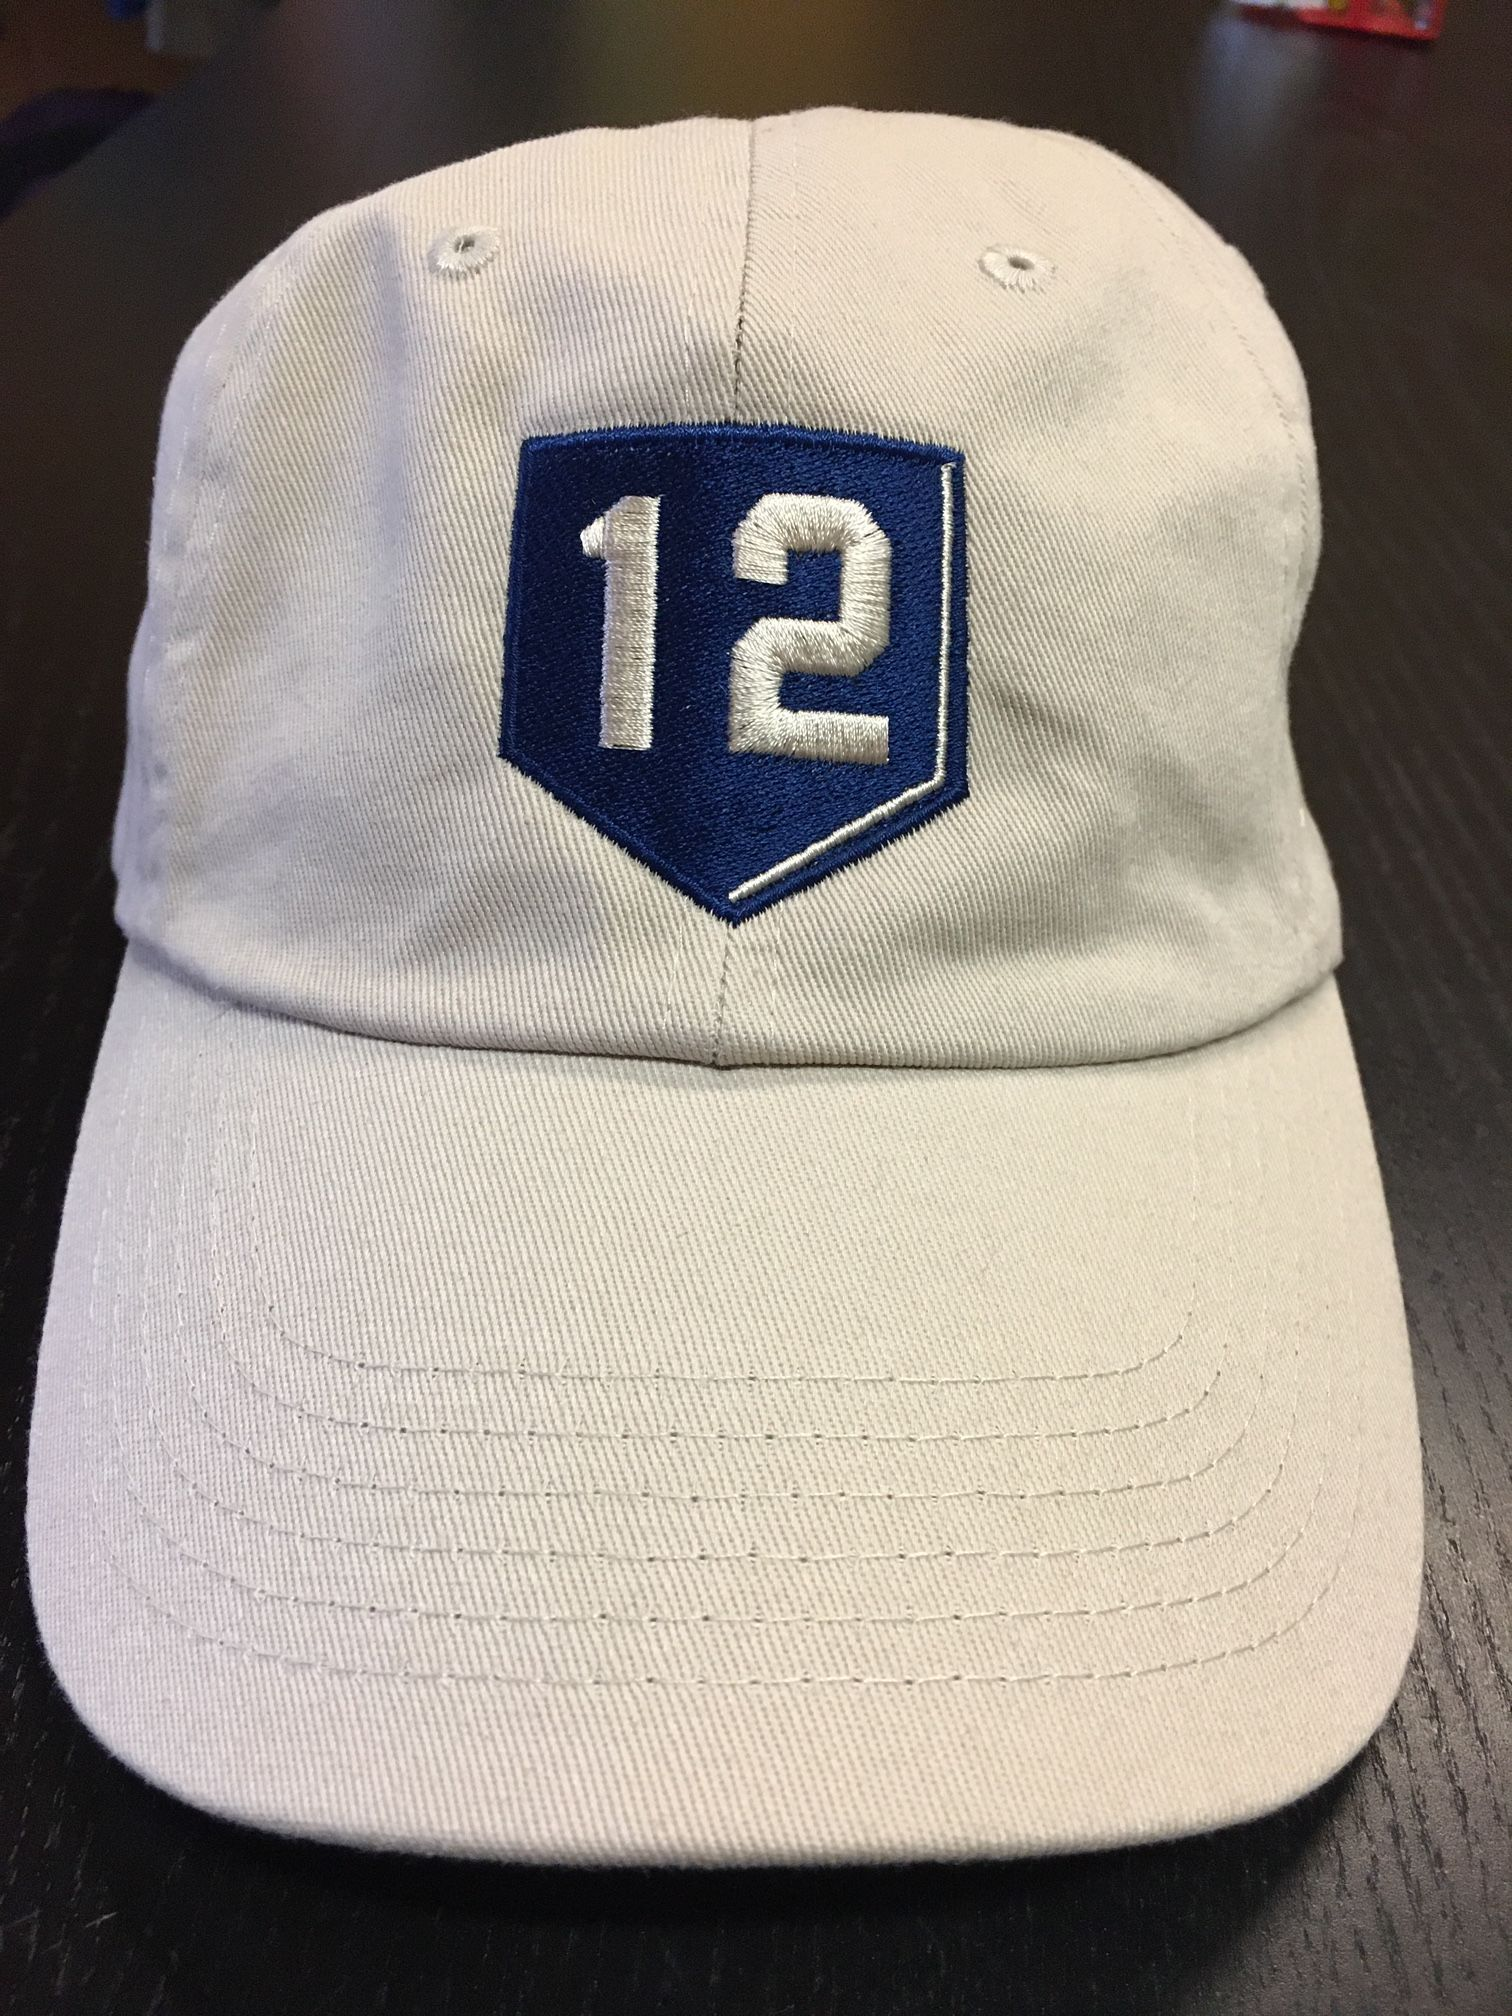 Drew medford Memorial Tournament Hat